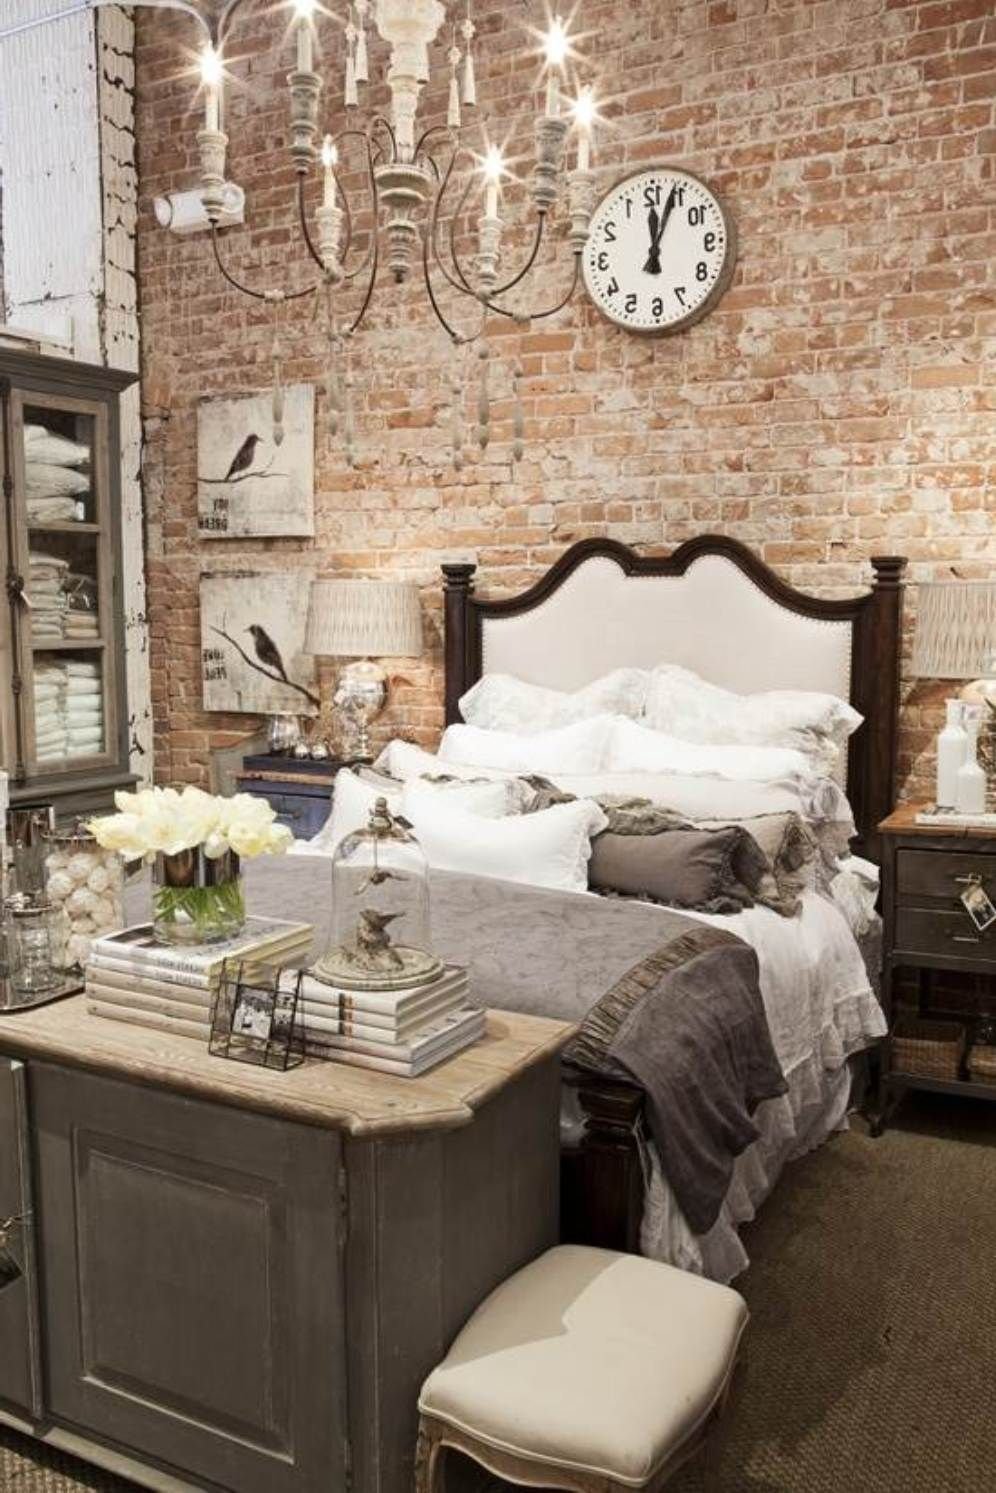 Elegant Romantic Bedrooms: Romantic Bedroom Ideas With Exposed Bricks : The Romantic